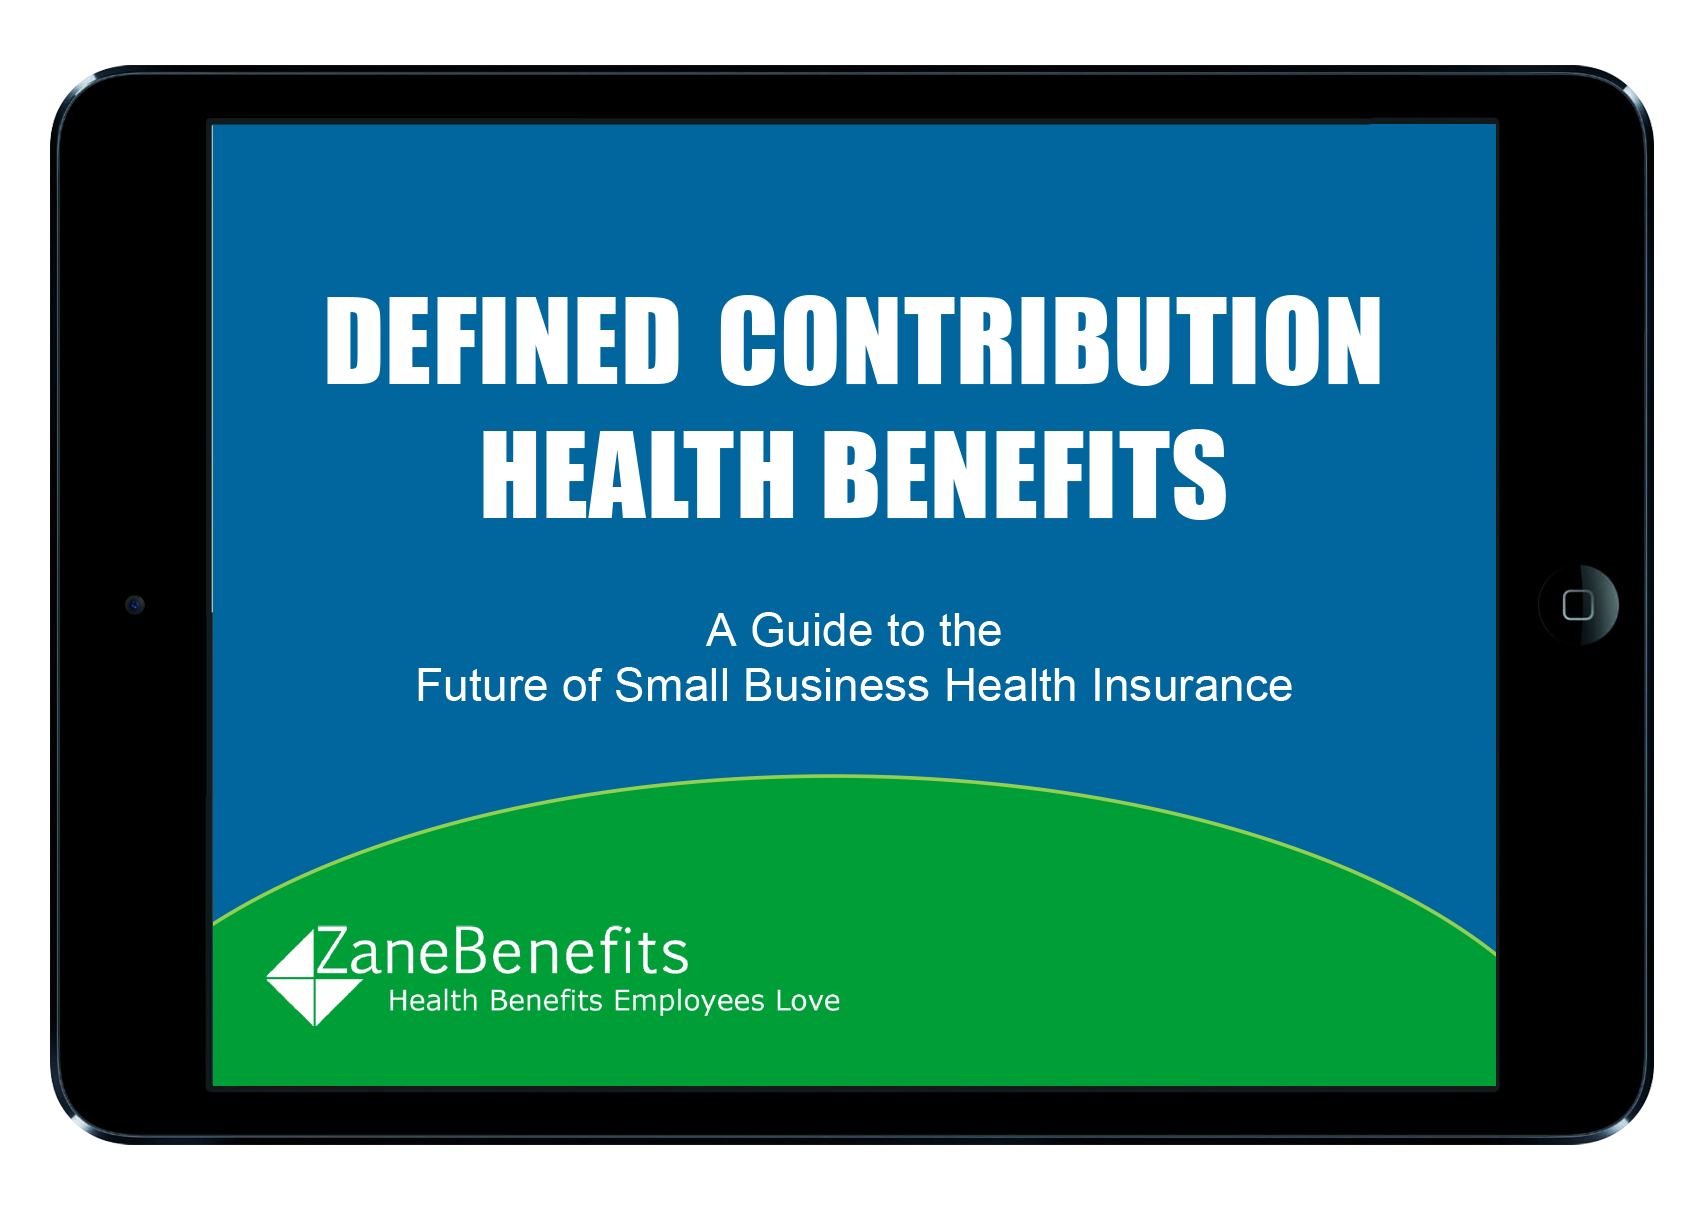 Defined Contribution Health Benefits for Small Business